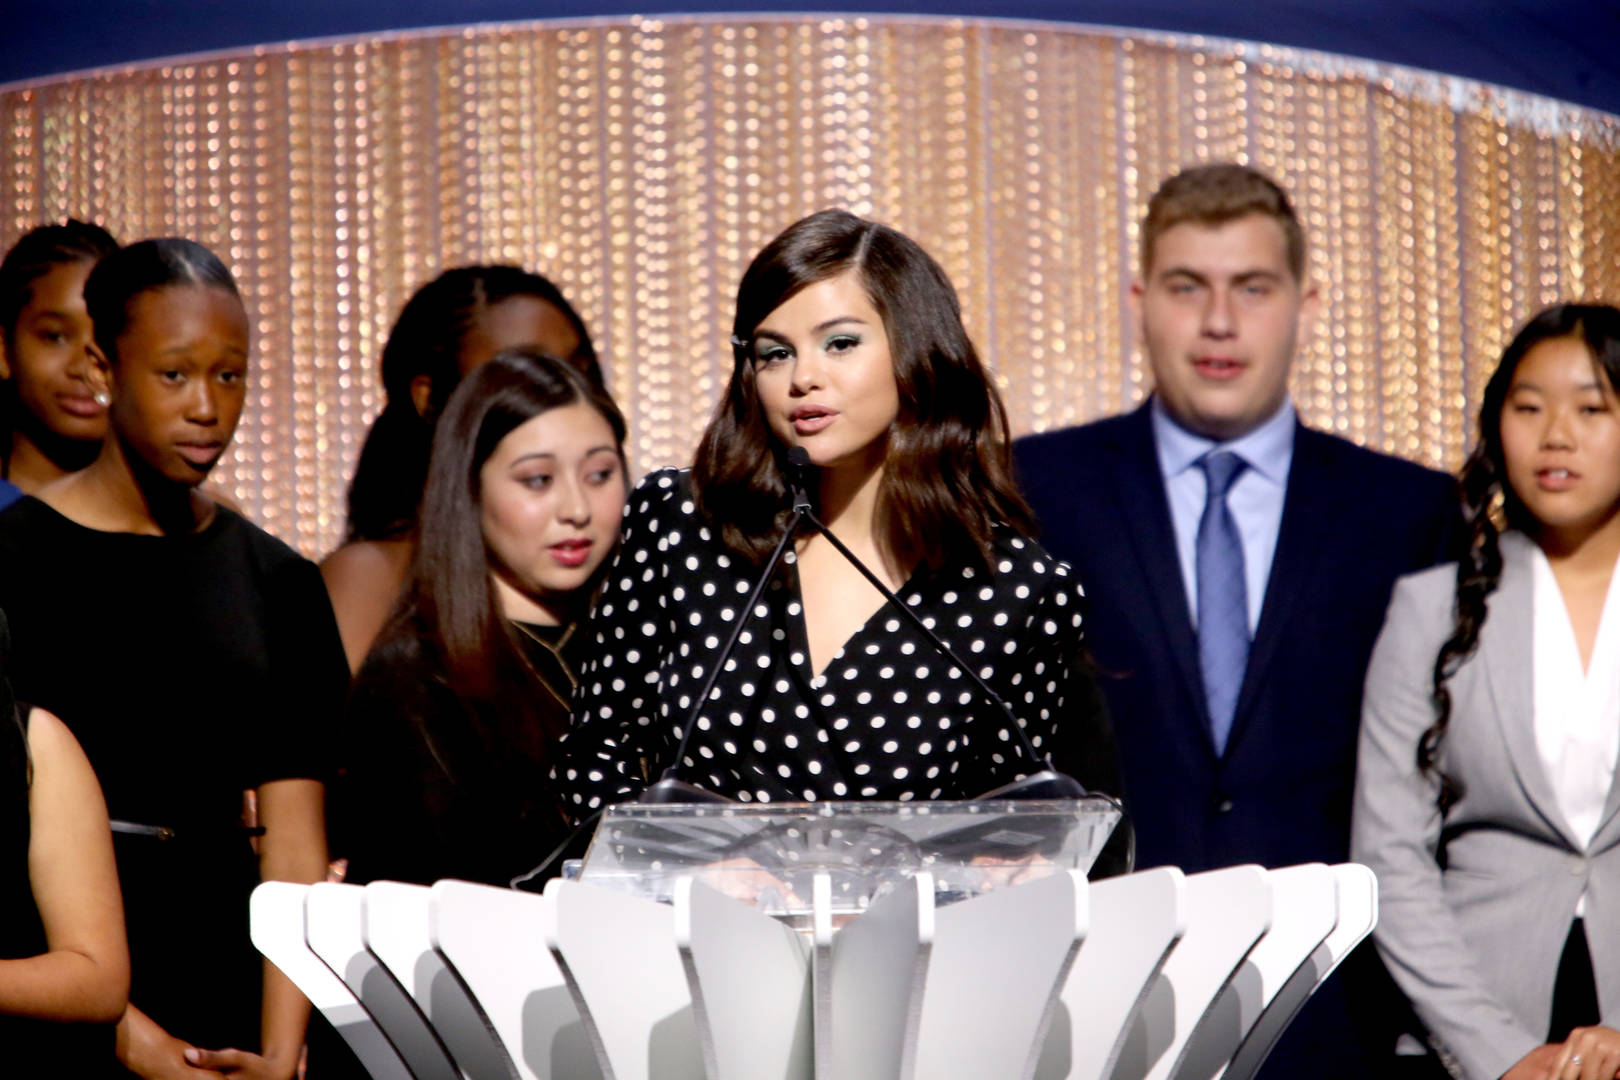 """Selena Gomez Praises The """"Beautiful Spirit That Is Oprah"""" For Inspiring Others To Be Better"""